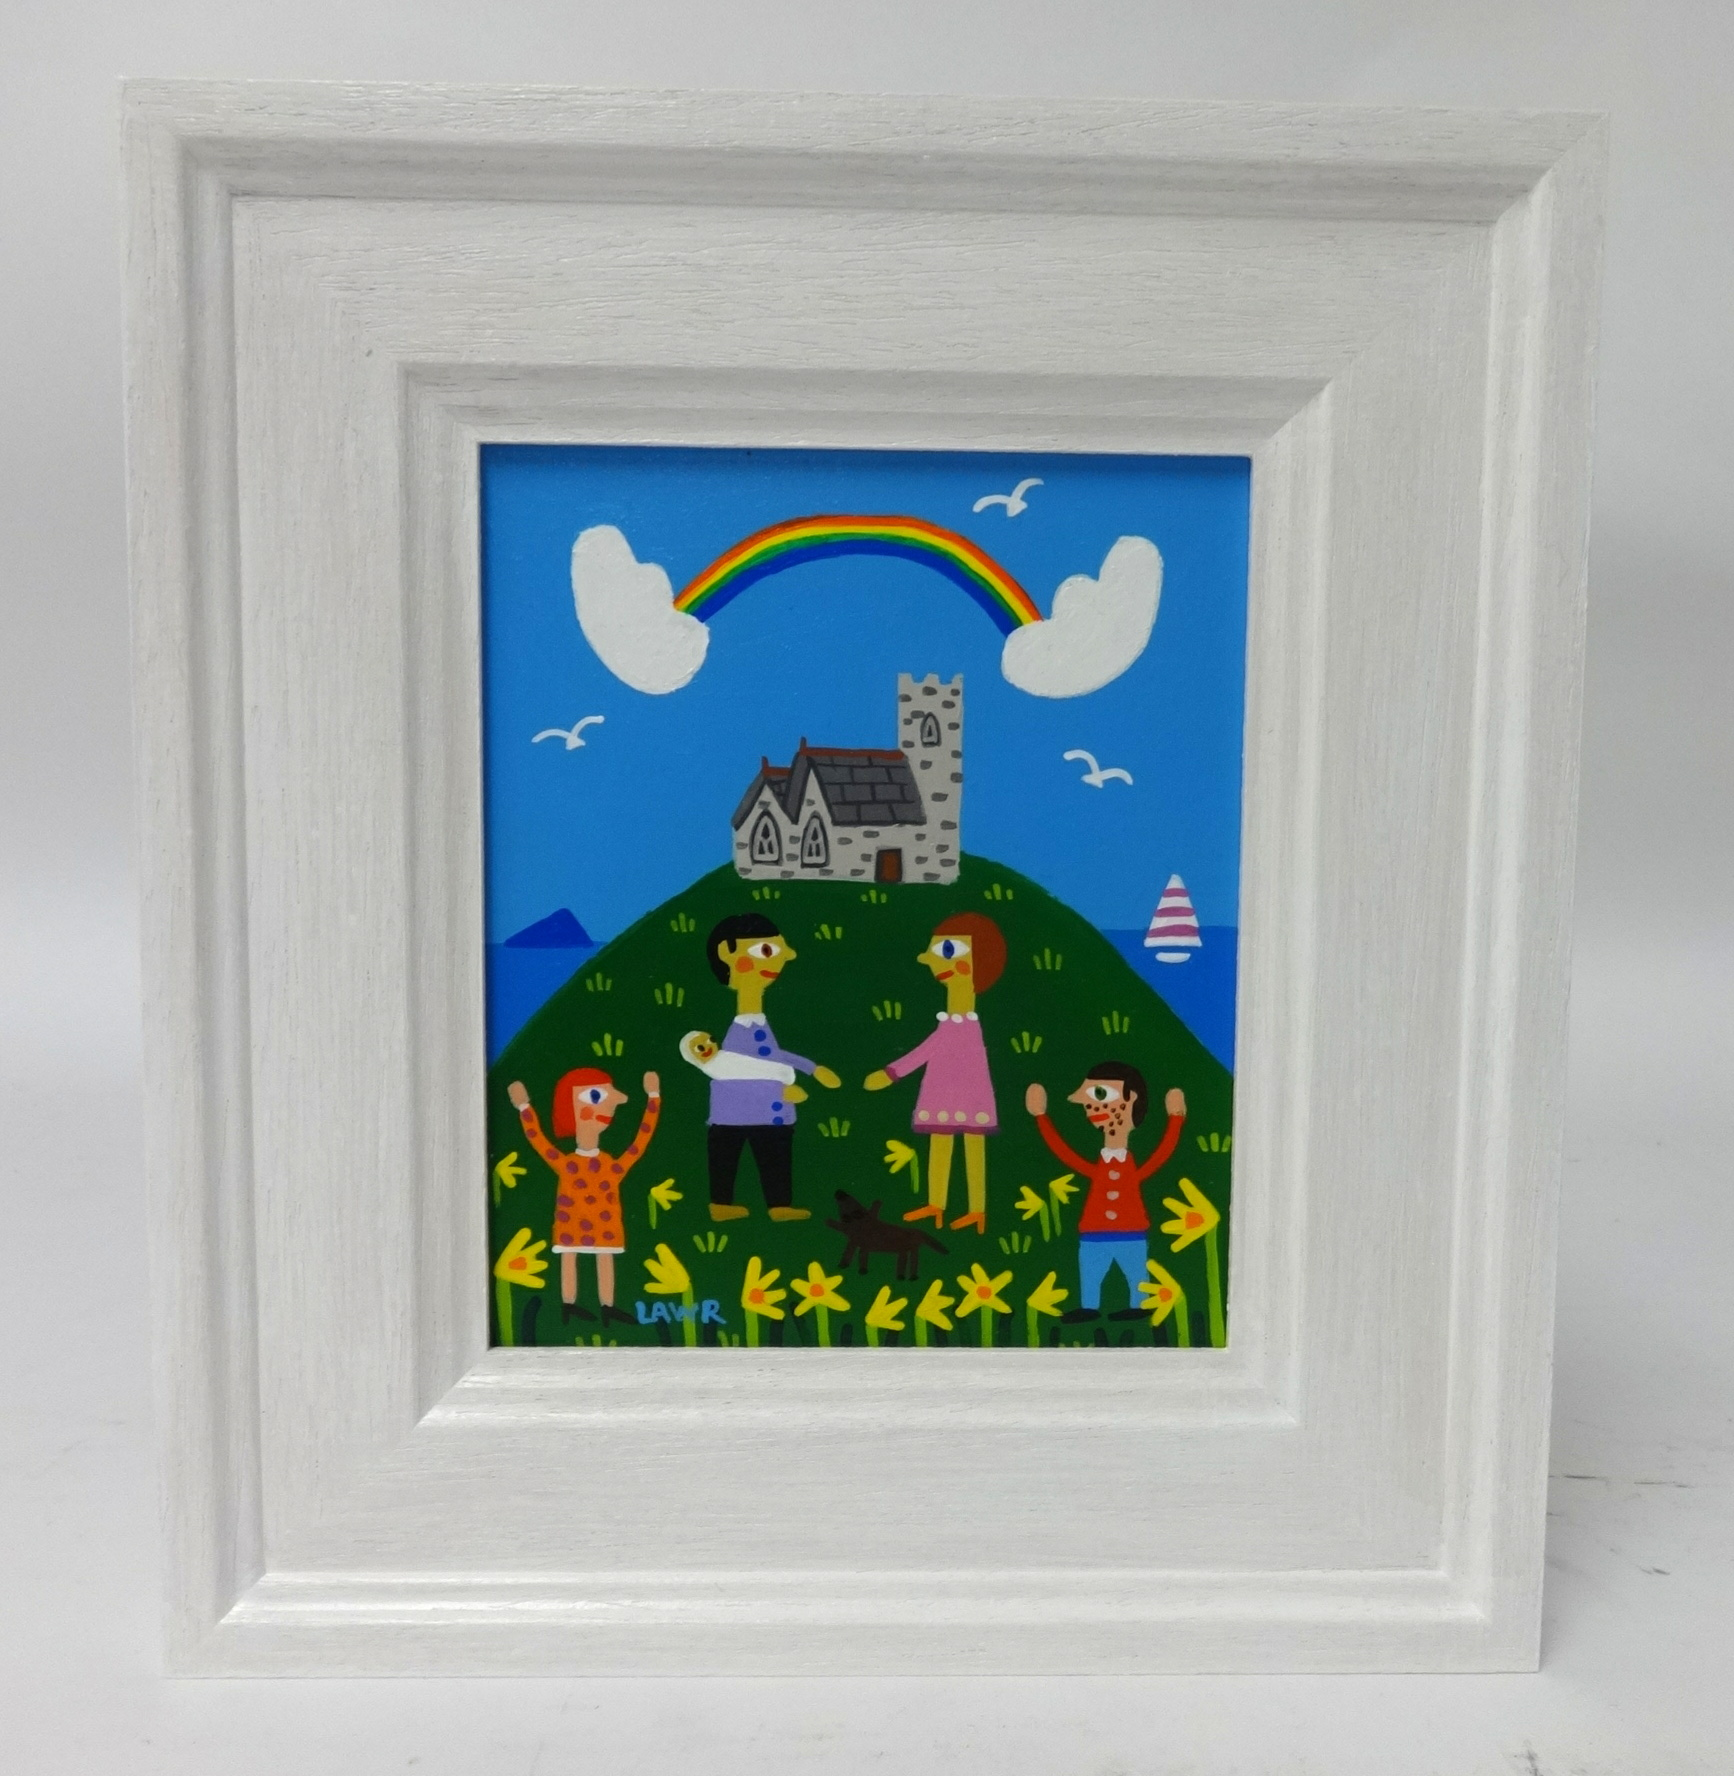 Lot 002 - Arth Lawr, 'A Christening at Wembury Church', signed and dated 2018, original acrylic on board, 14cm